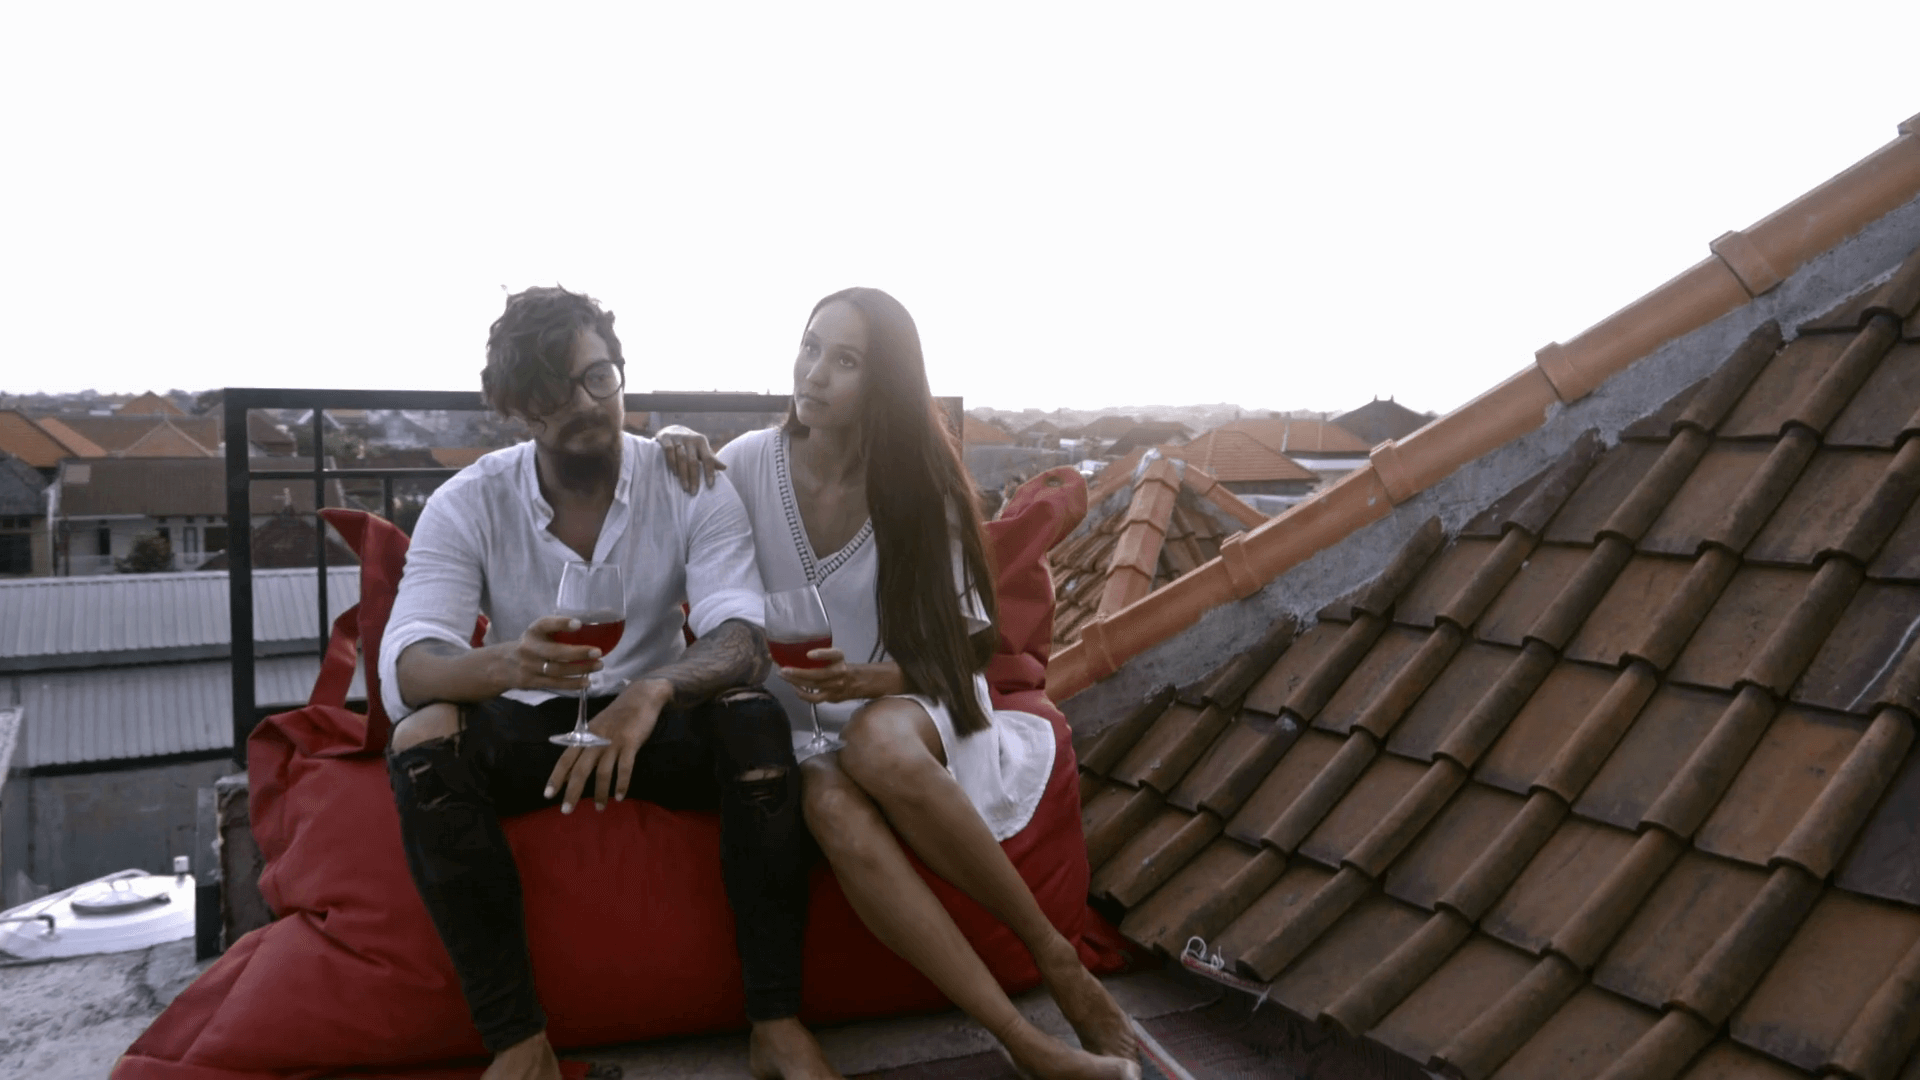 videoblocks-romantic-young-couple-sitting-on-rooftop-terrace-at-sunset-drinking-red-wine-smiling-and-speaking_rwmsa5nvm_thumbnail-full01 (1).png